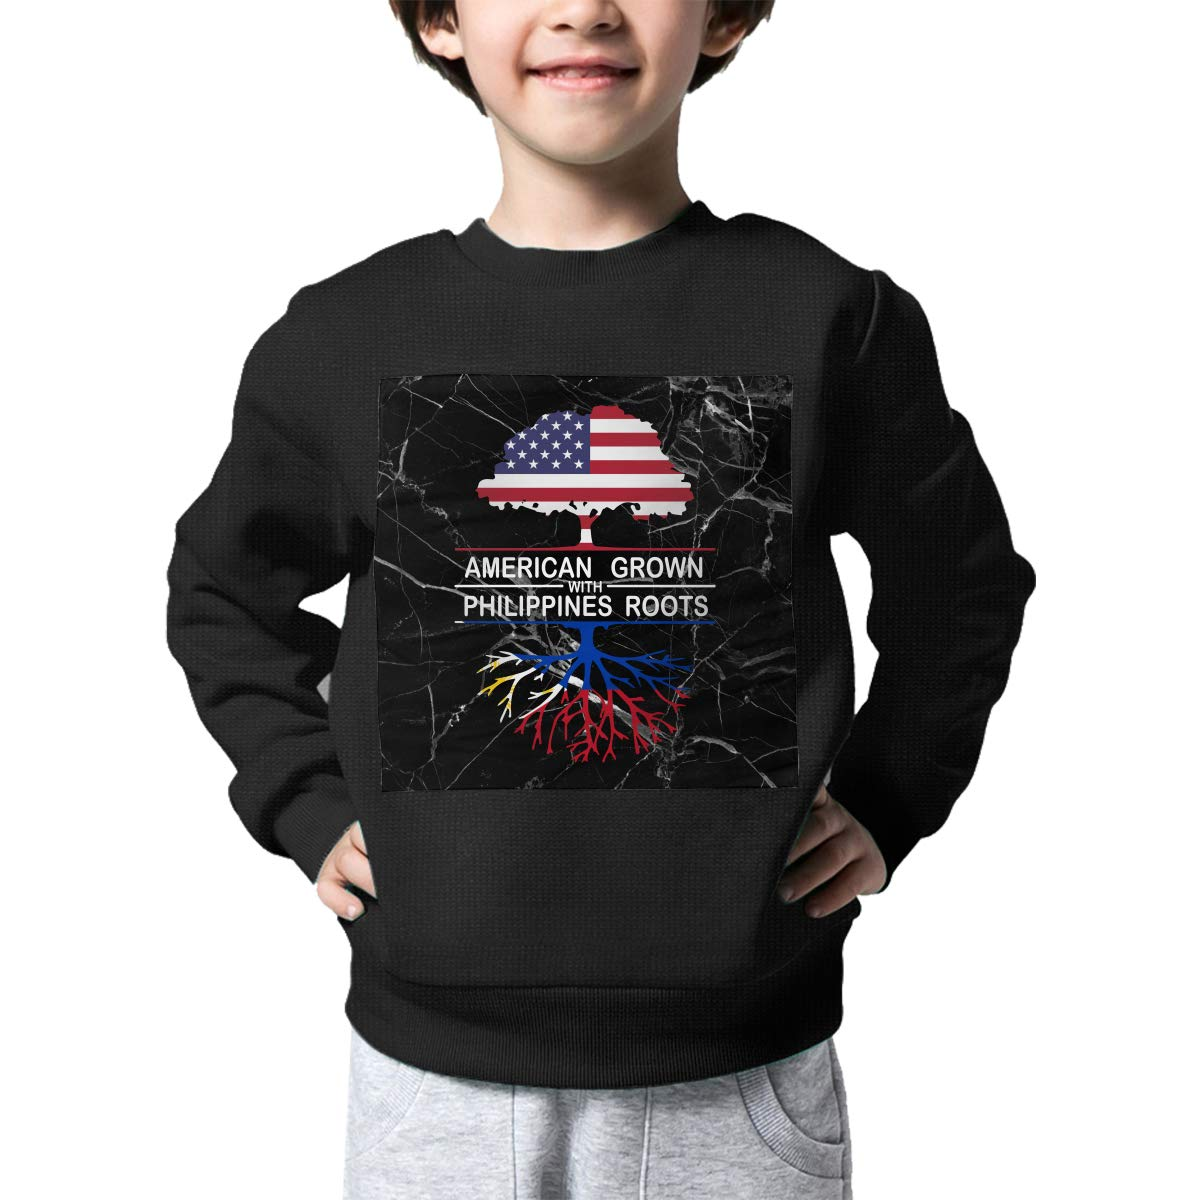 American Grown with Philippines Roots Print Baby Girls Childrens Crew Neck Sweater Long Sleeve Warm Knit Top Blouse